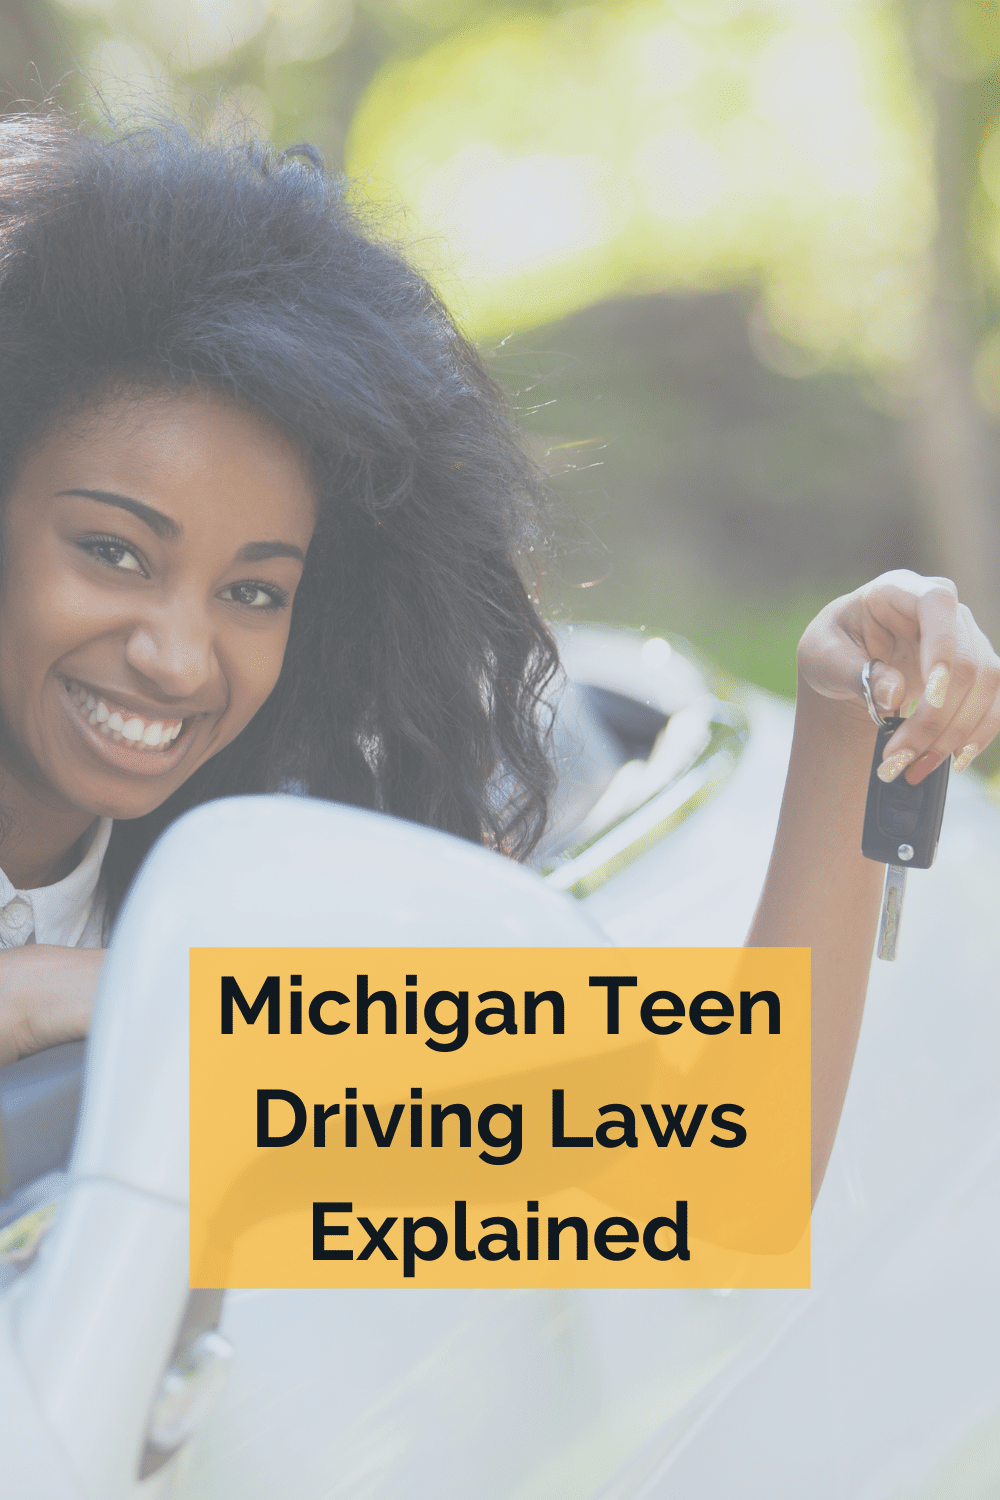 Michigan Teen Driving Laws: What You Need To Know